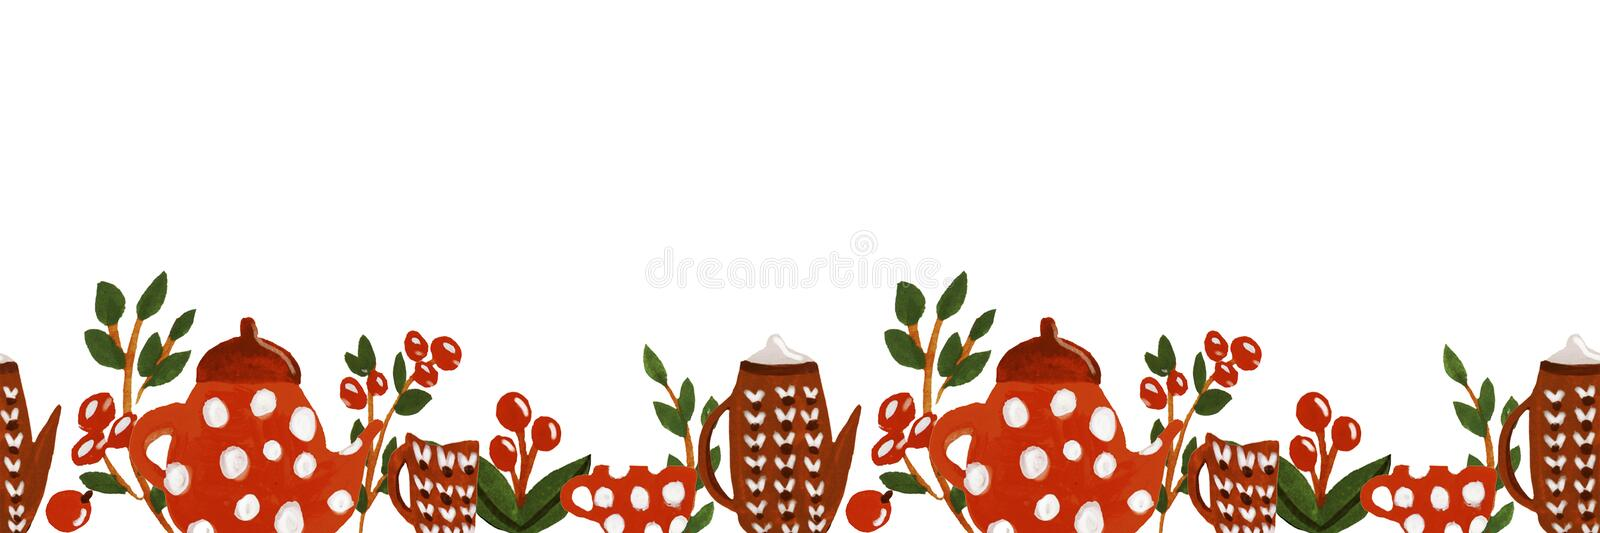 Illustration of tea time vector illustration